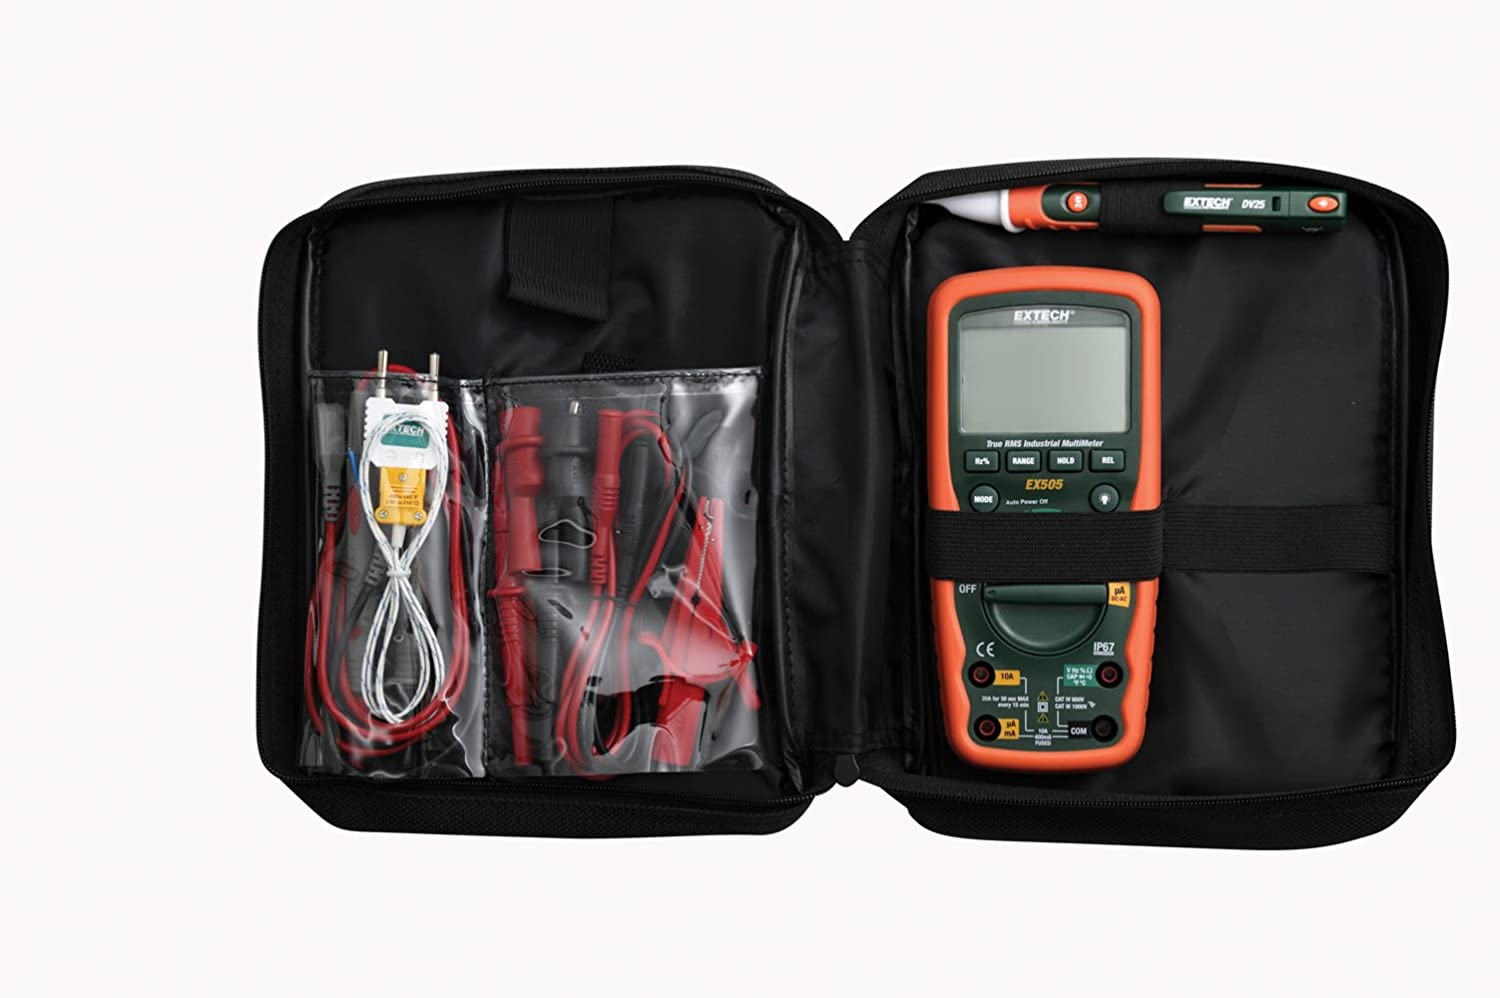 Extech Ex505 K Heavy Duty Industrial Multimeter Kit Instruments Corp Ac Circuit Load Tester